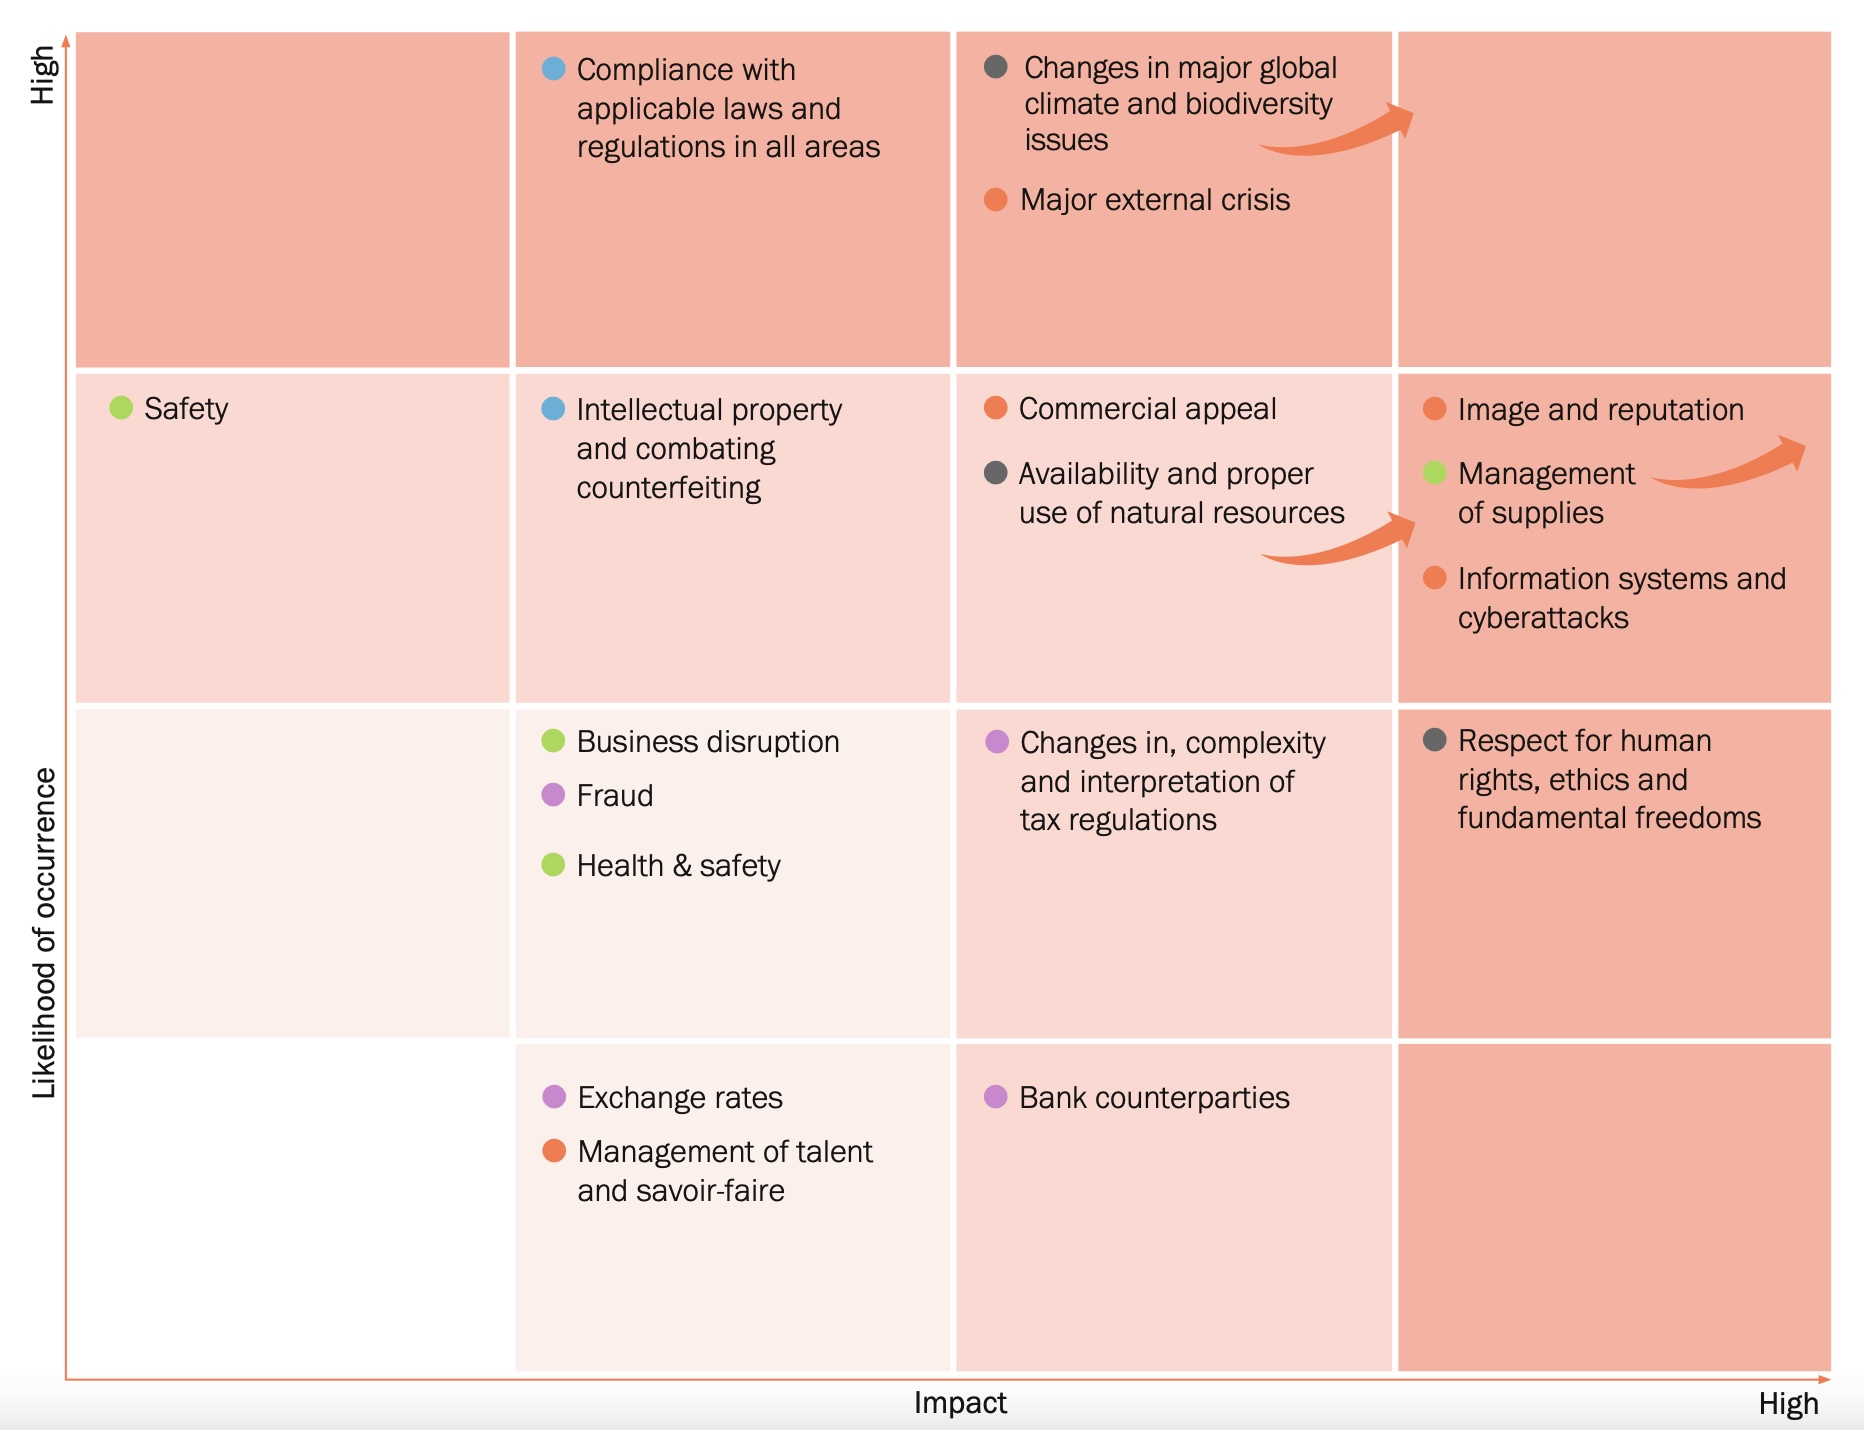 Risk Factors organized by Likelihood and Impact (p.324).